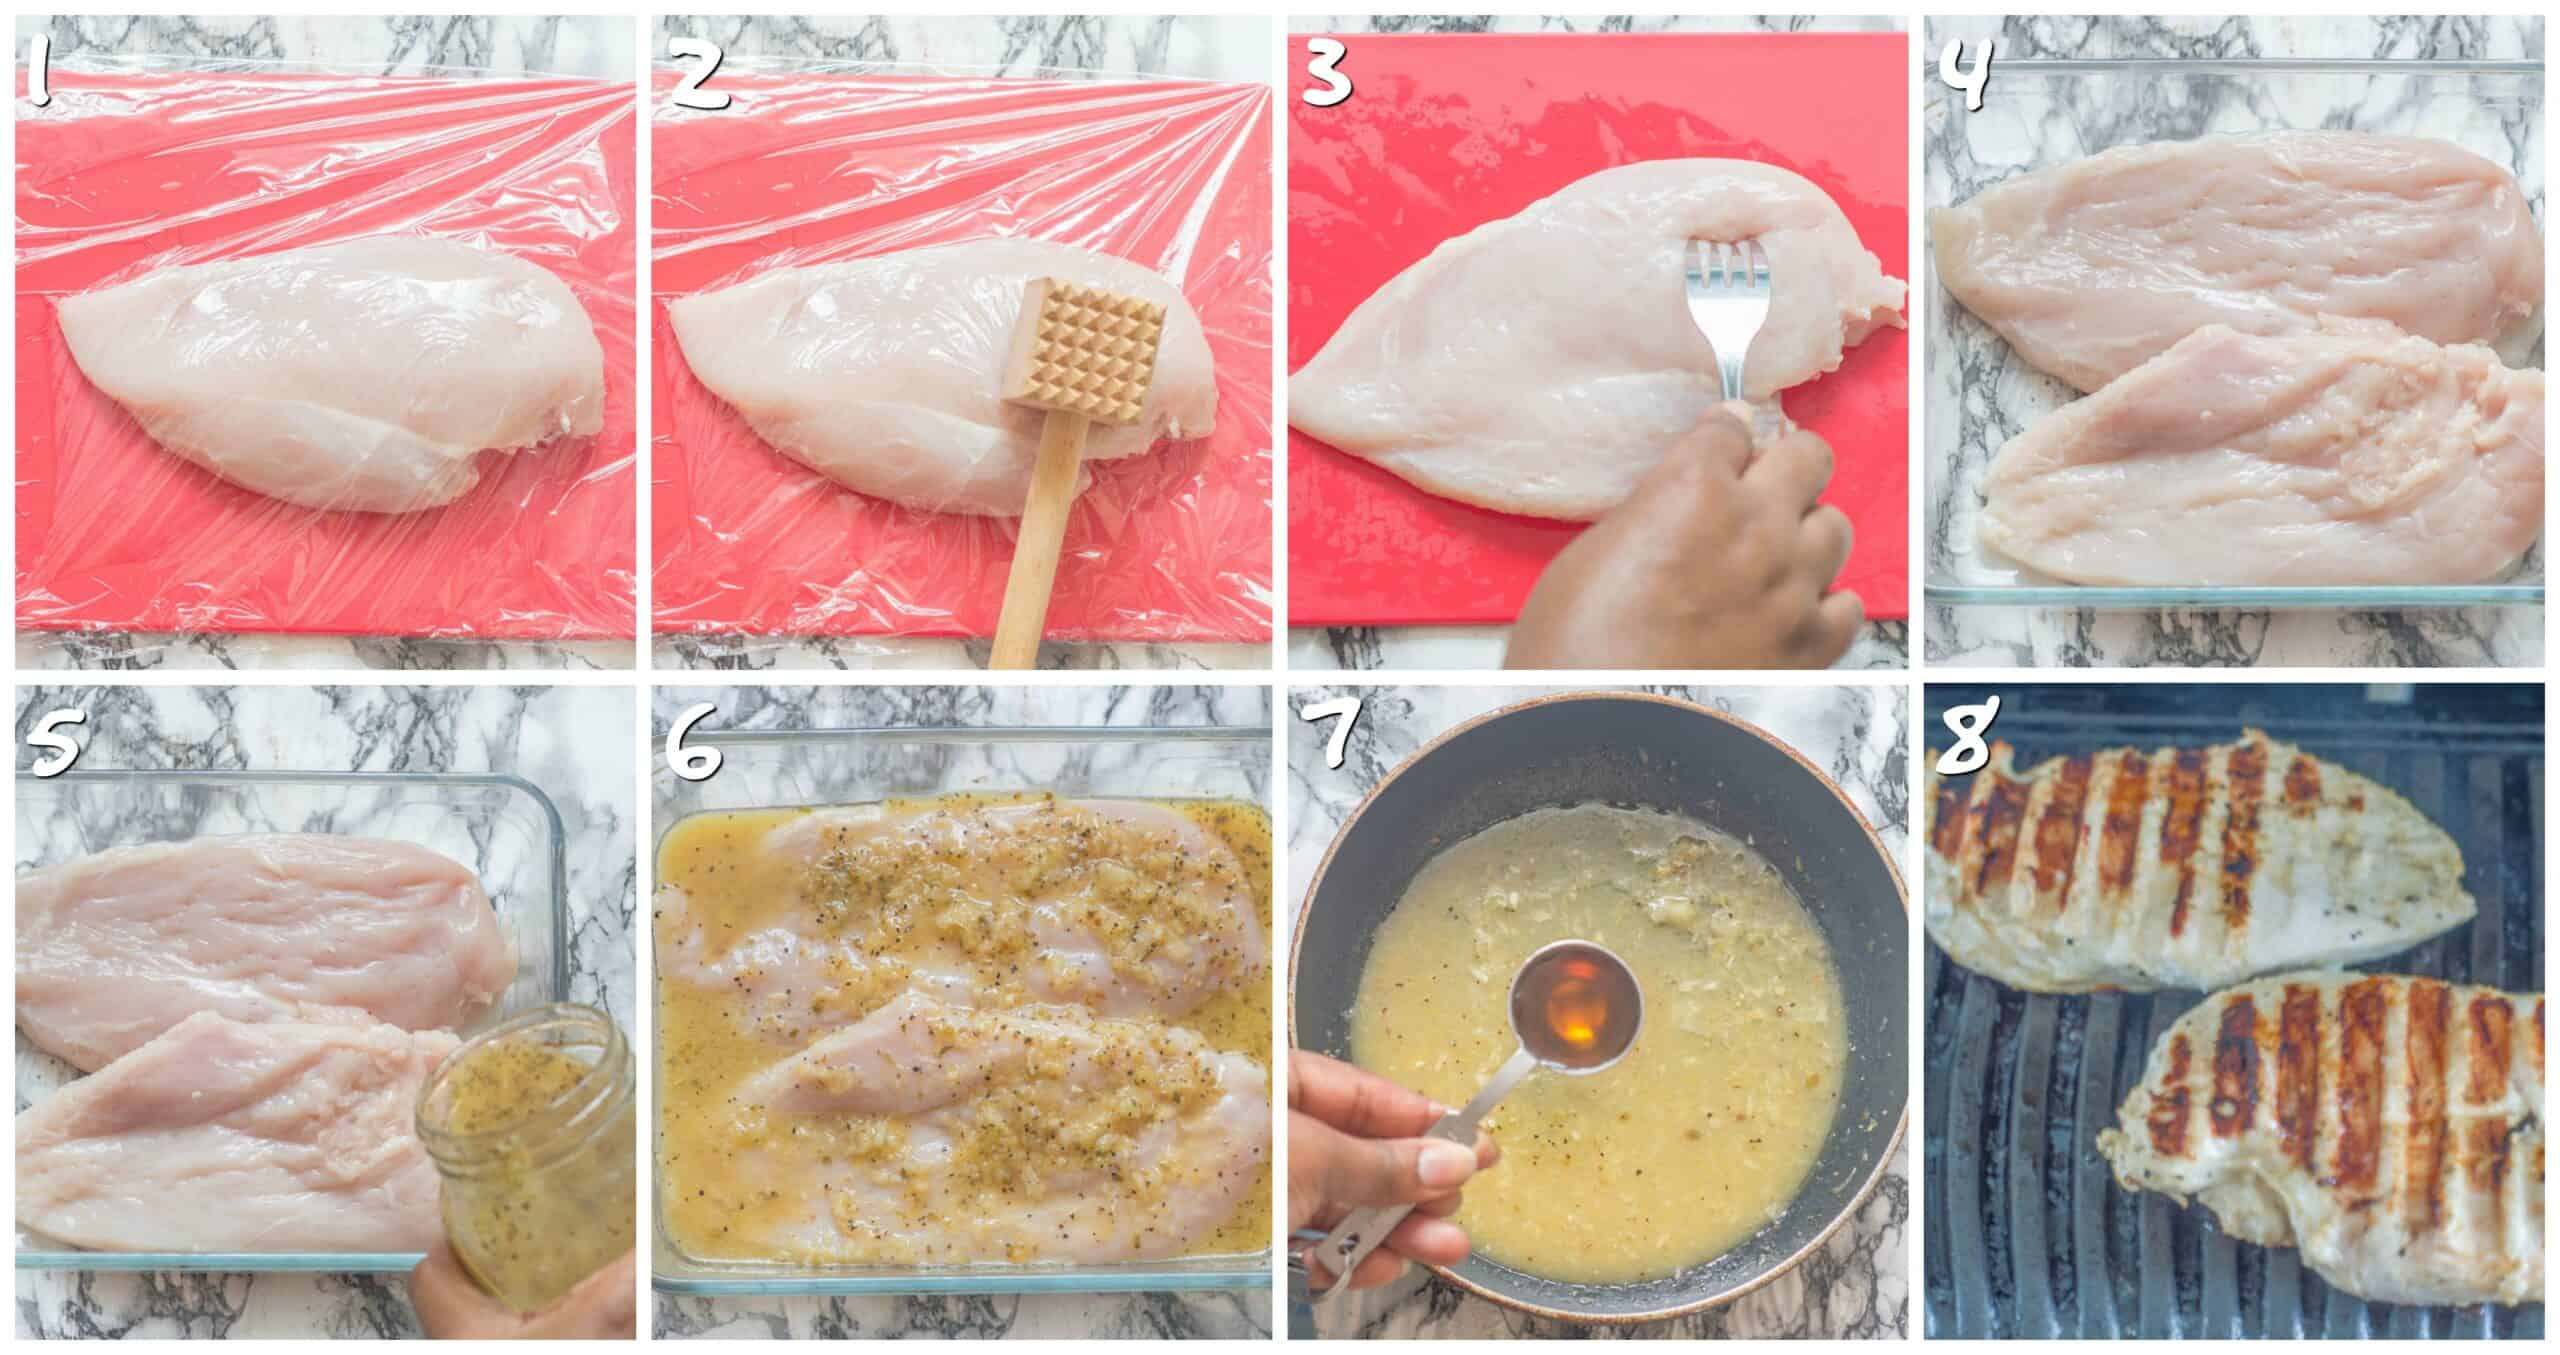 steps 1-8 marinating the chicken and preparing the sauce